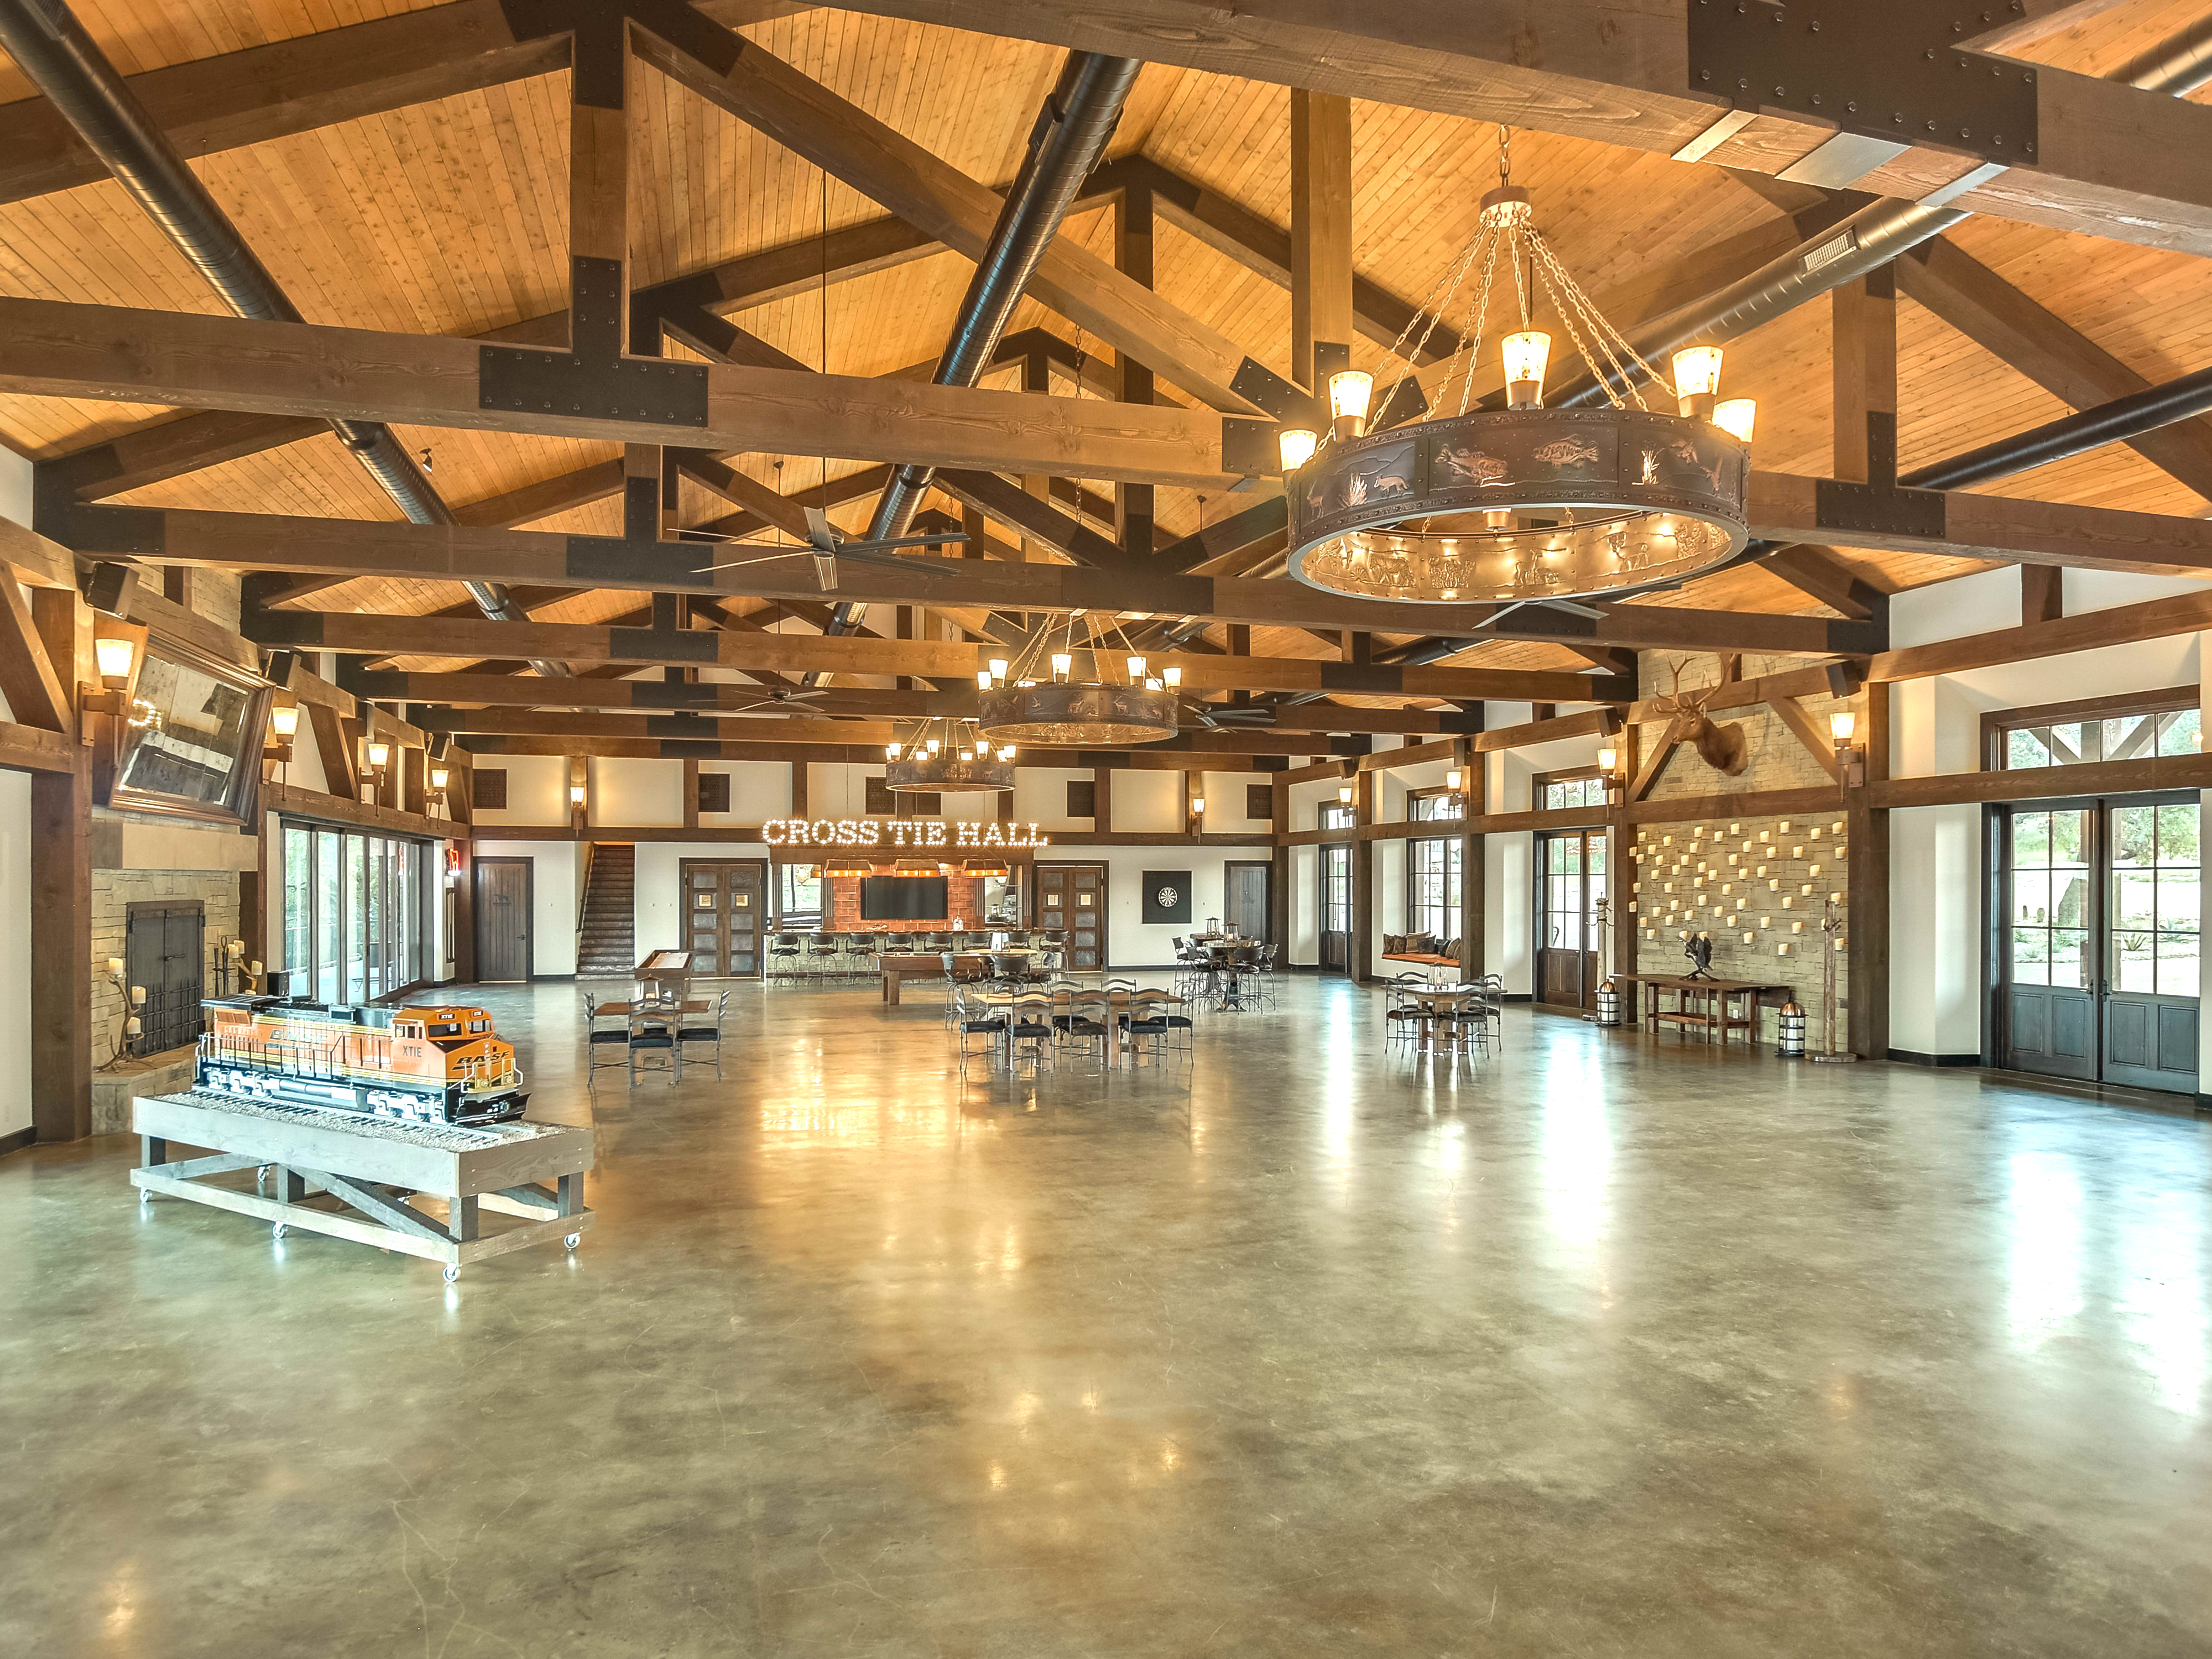 The Party Barn 4